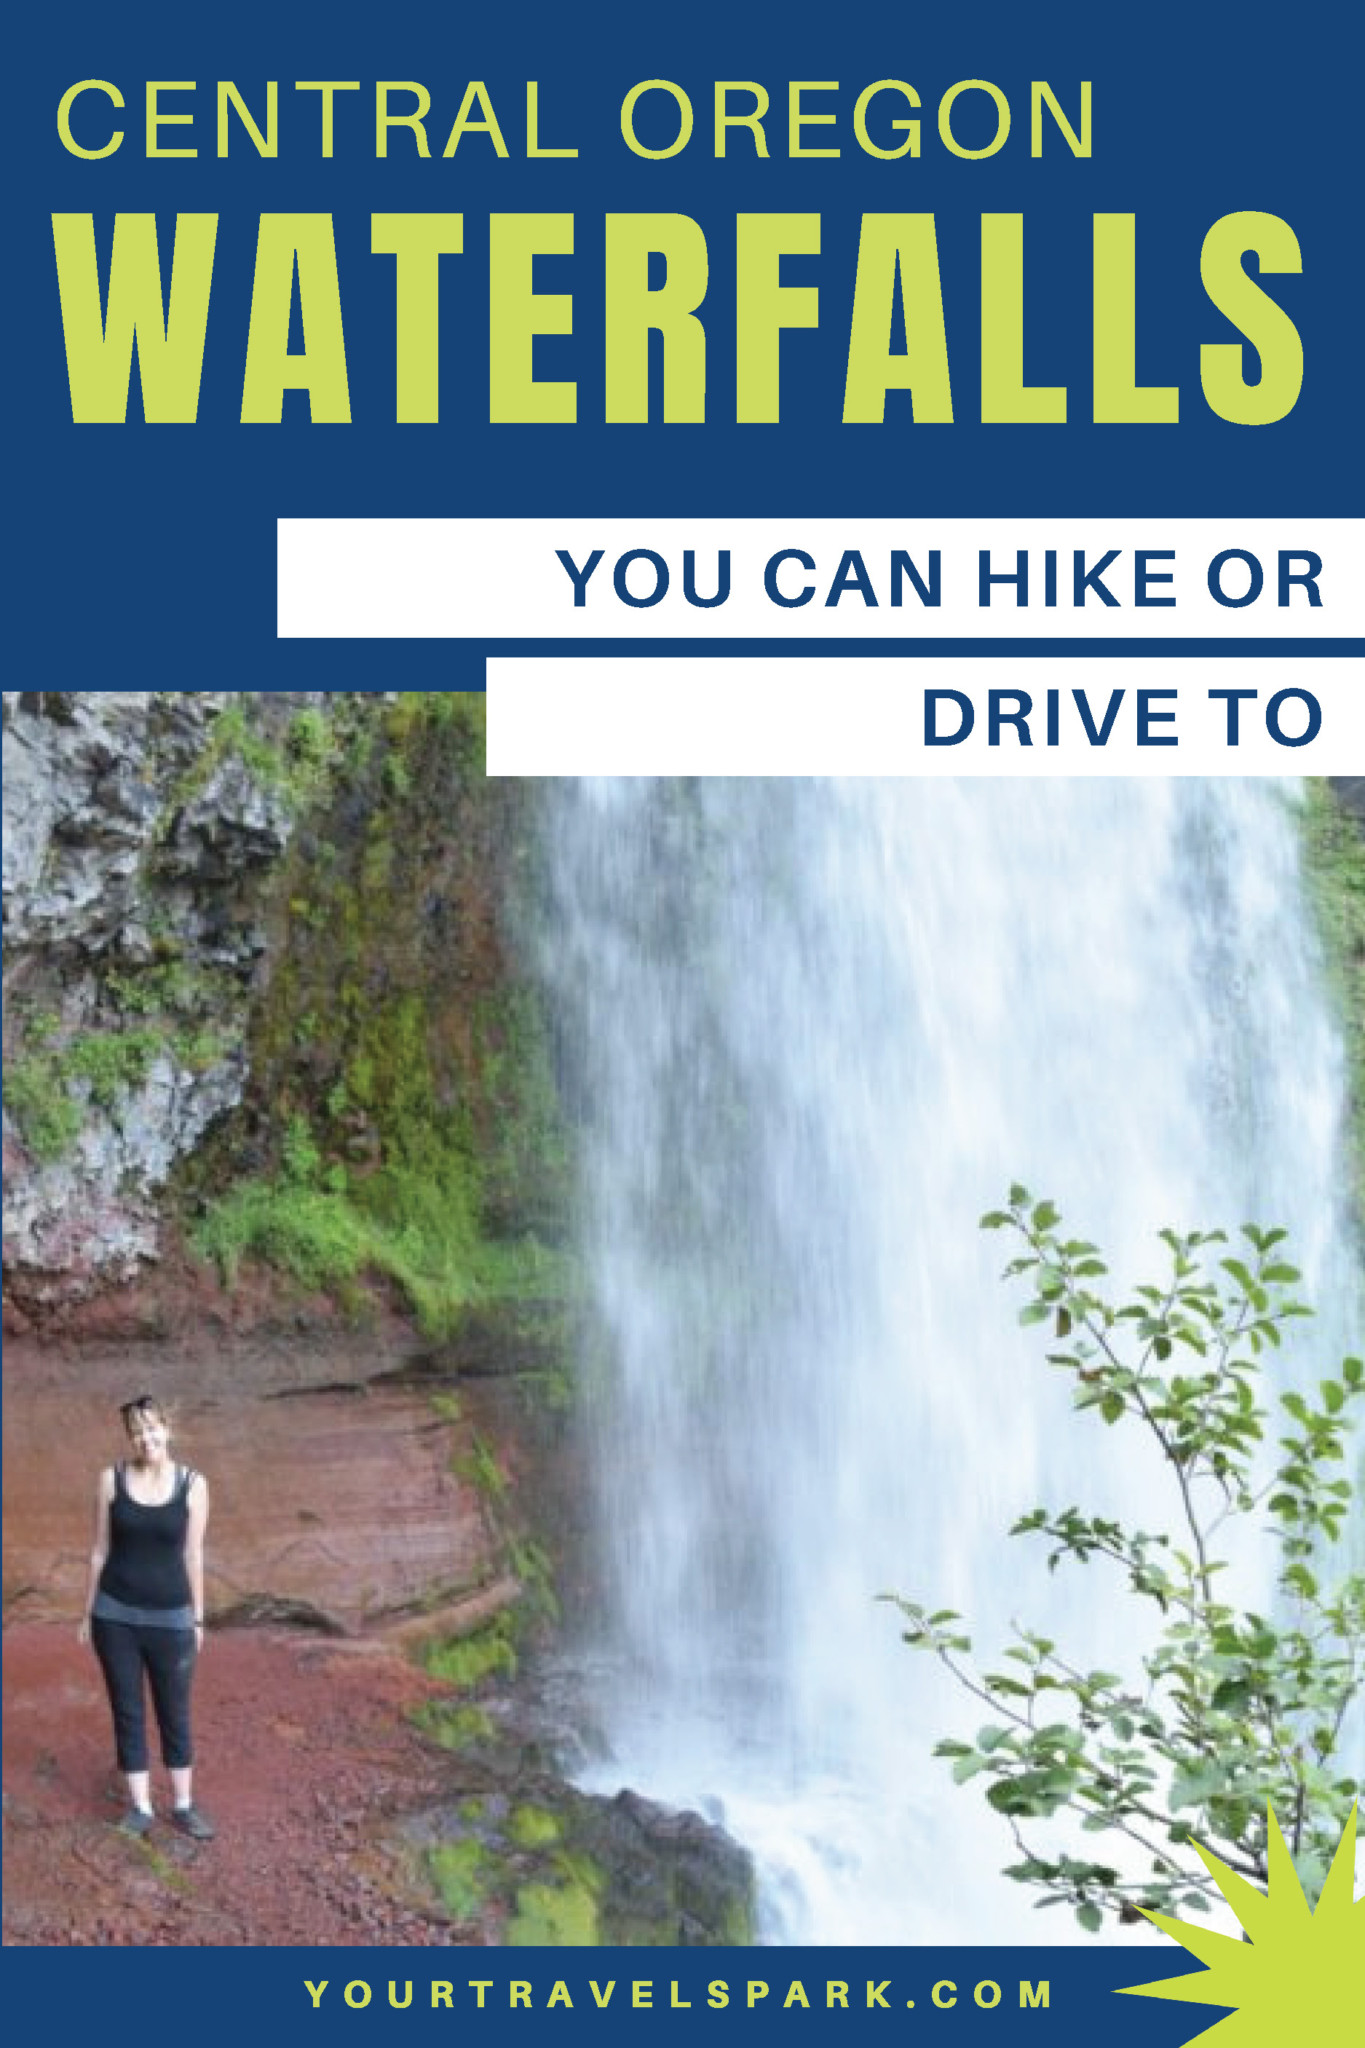 There are so many Central Oregon waterfalls (near Bend, Oregon) to visit while in the area — and many you can hike or even drive to. Here are our favorites! #waterfalls #centraloregon #bendoregon #oregon #oregonwaterfalls #bendoregonwaterfalls